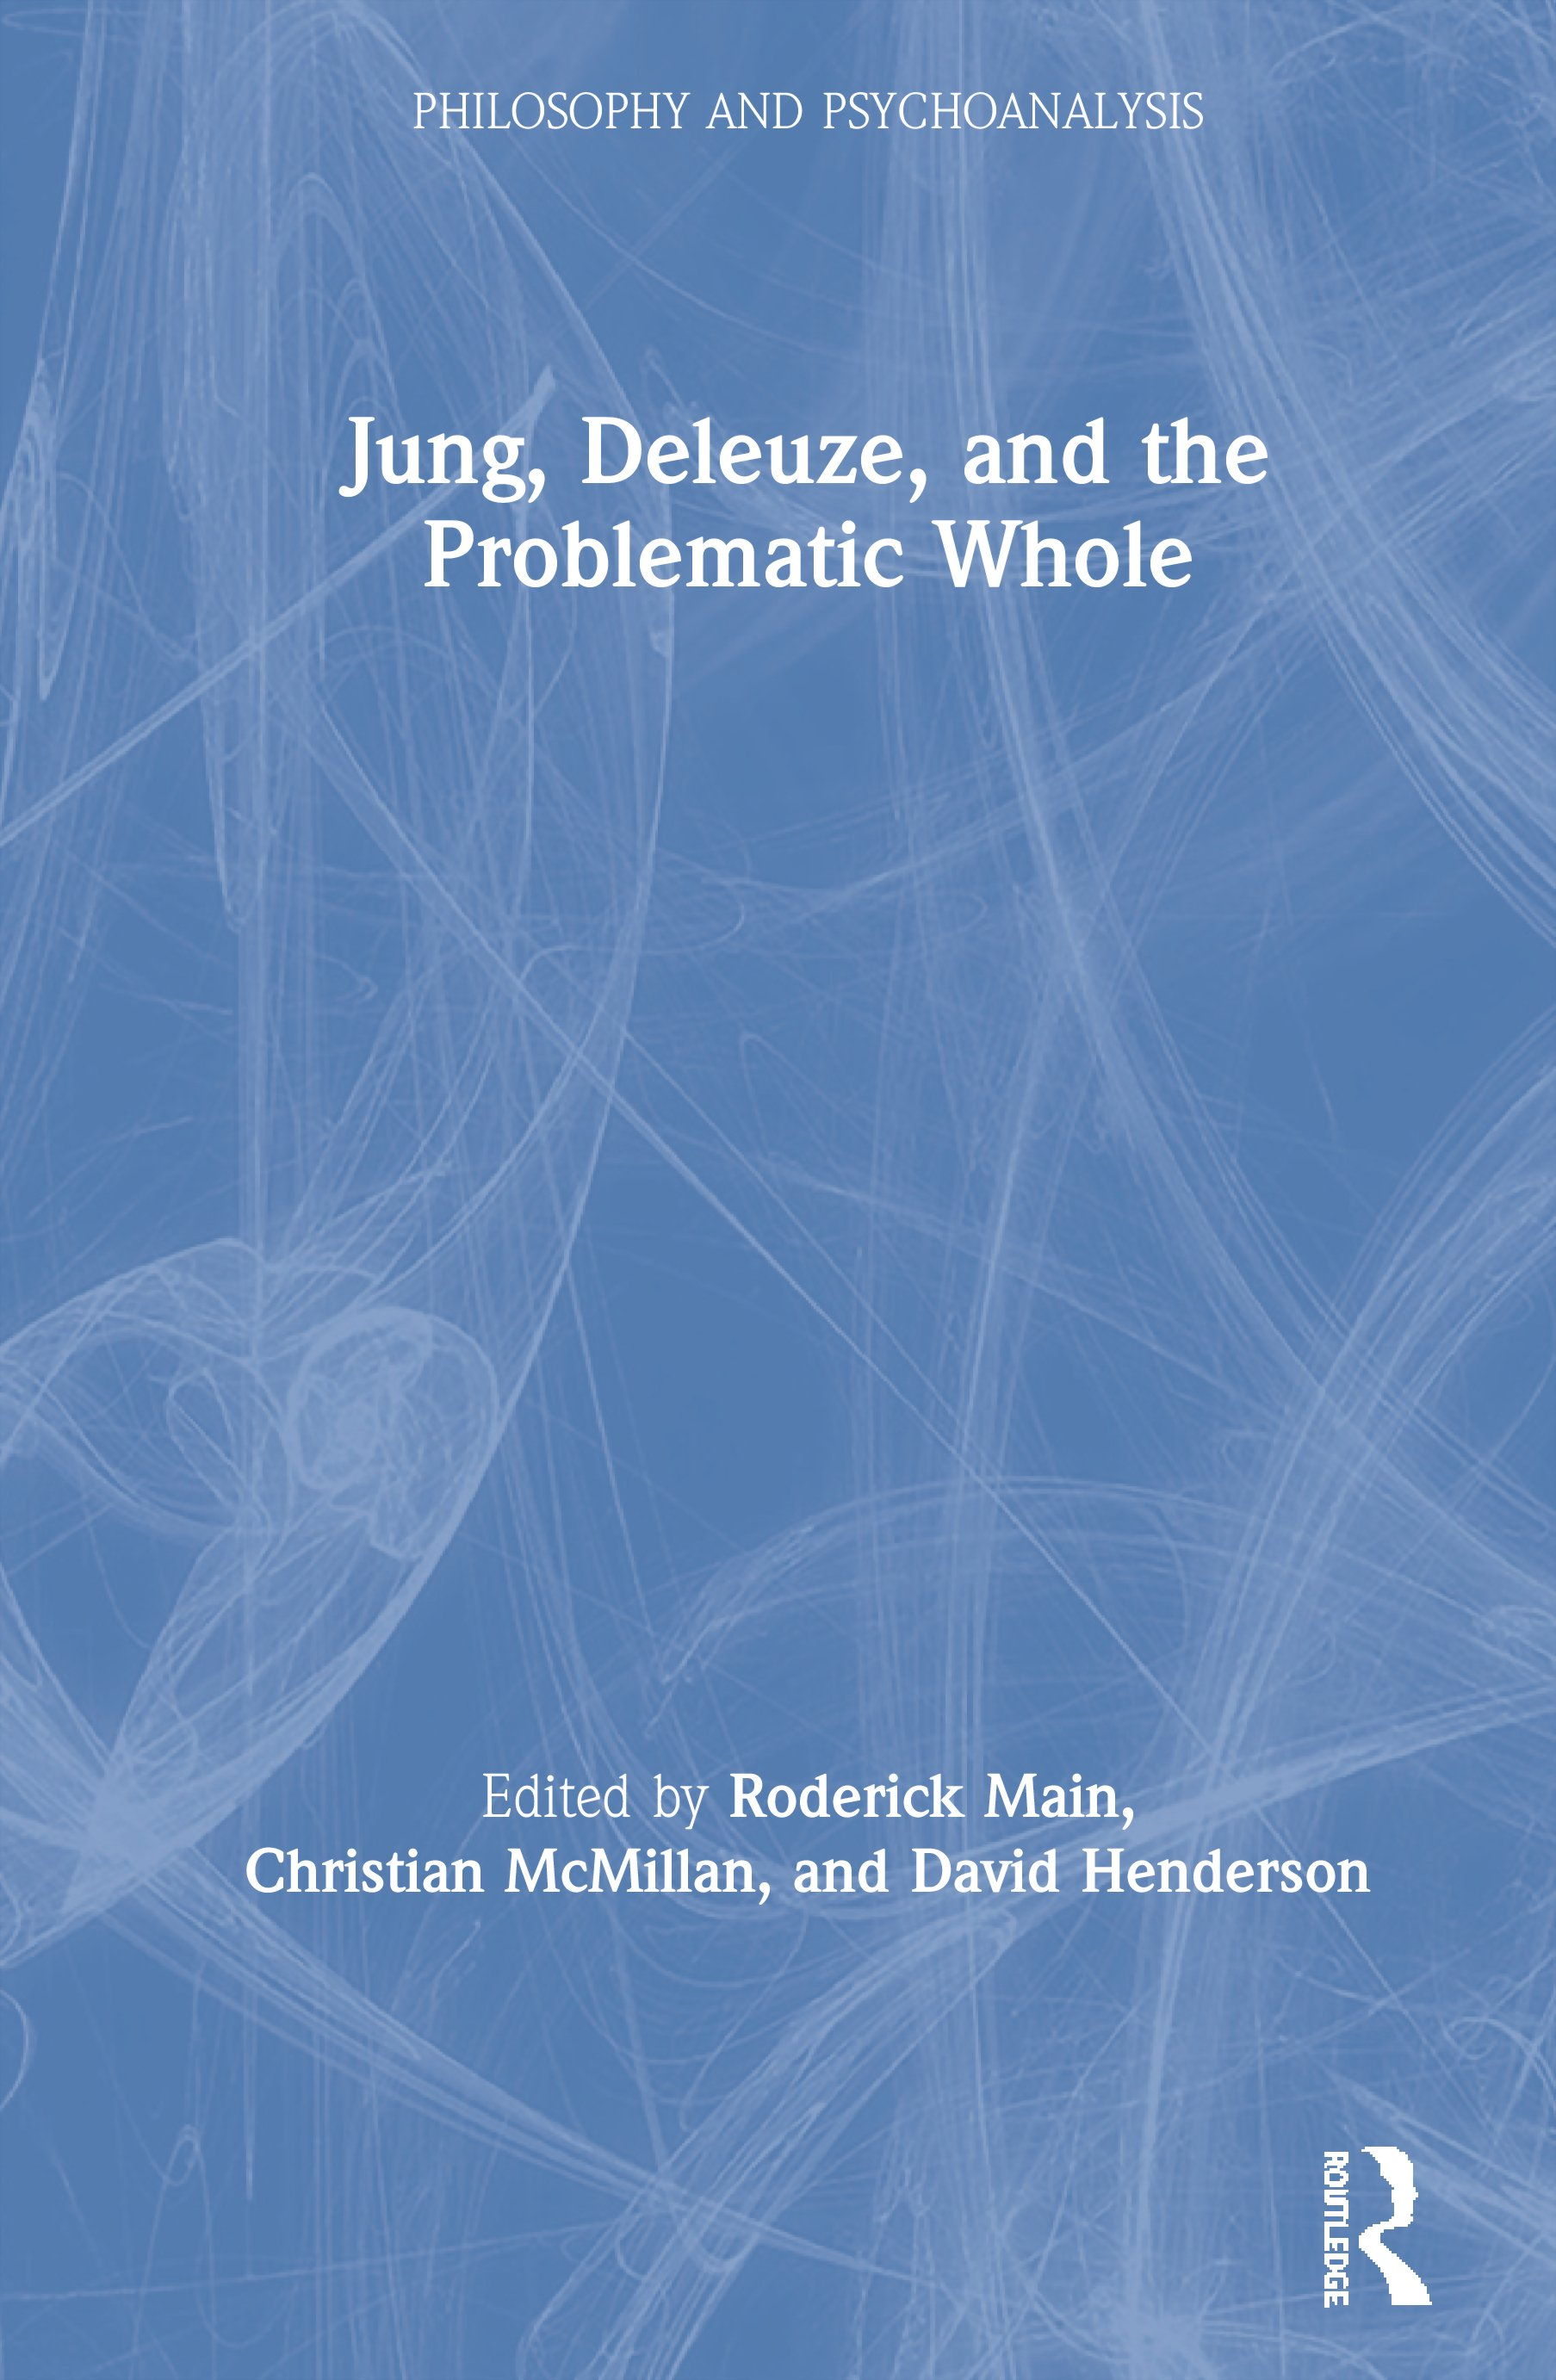 Jung, Deleuze, and the Problematic Whole: Originality, Development and Progress book cover